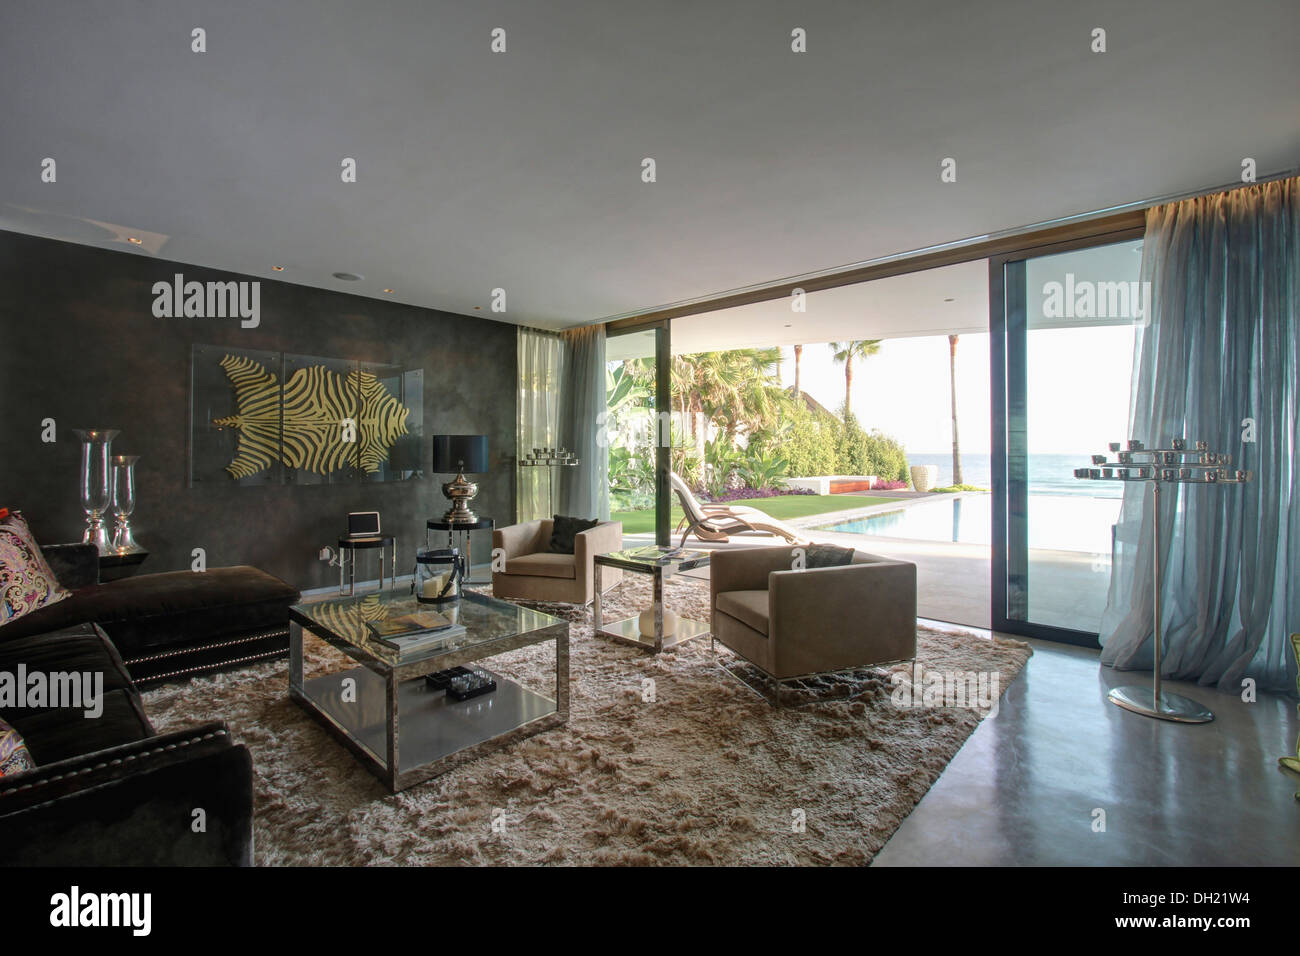 Armchairs And Glass Coffee Table On Shag Pile Carpet In Modern Spanish Living Room With Silver